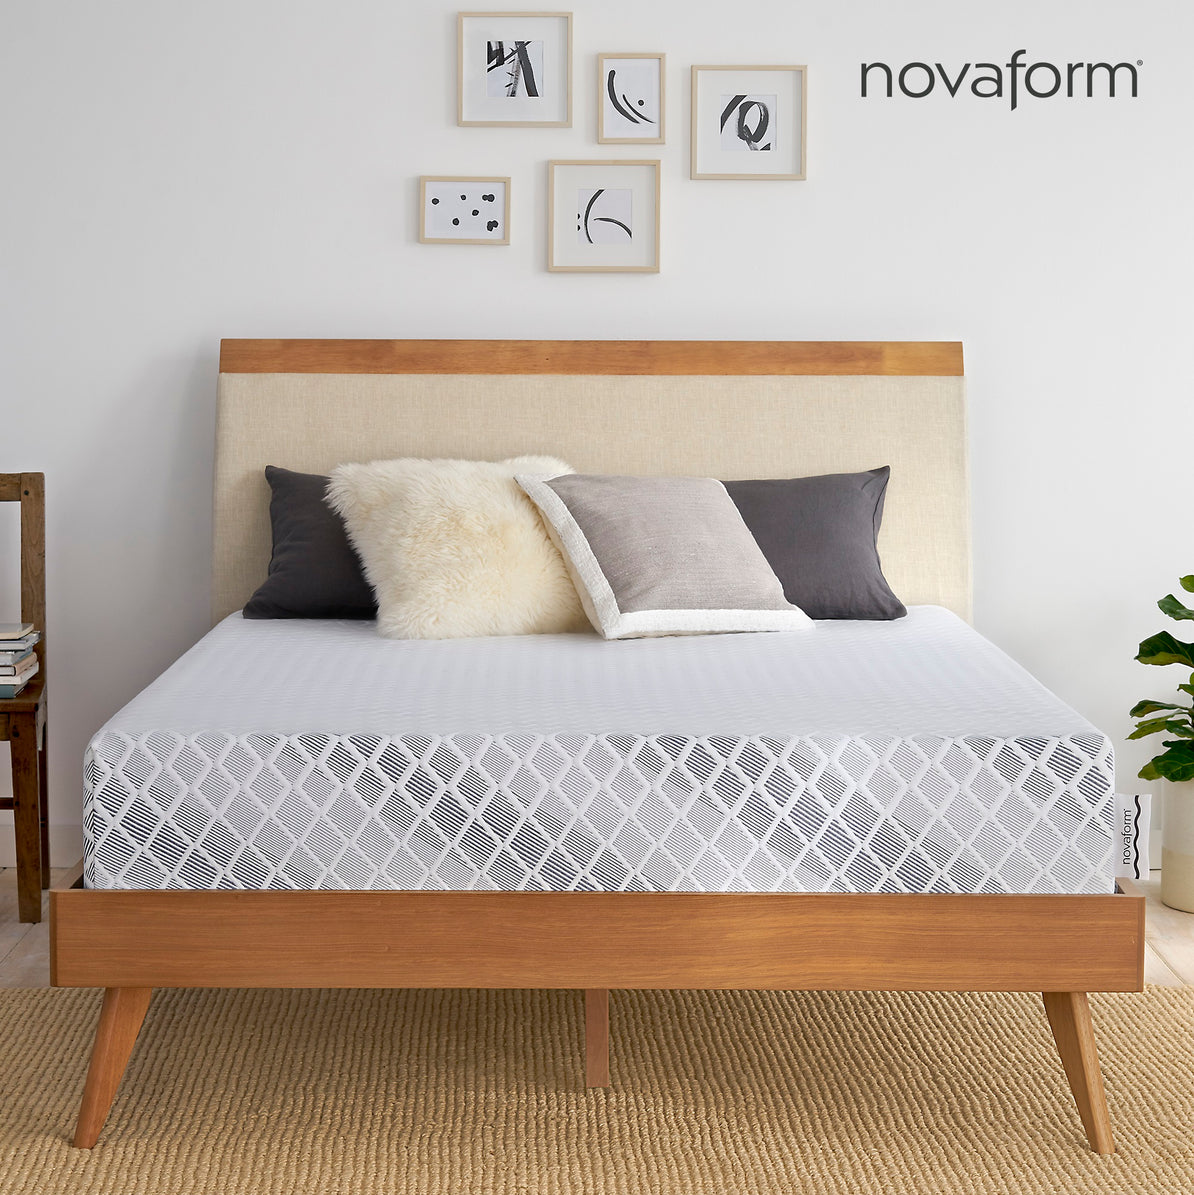 novaform mattress review 2019